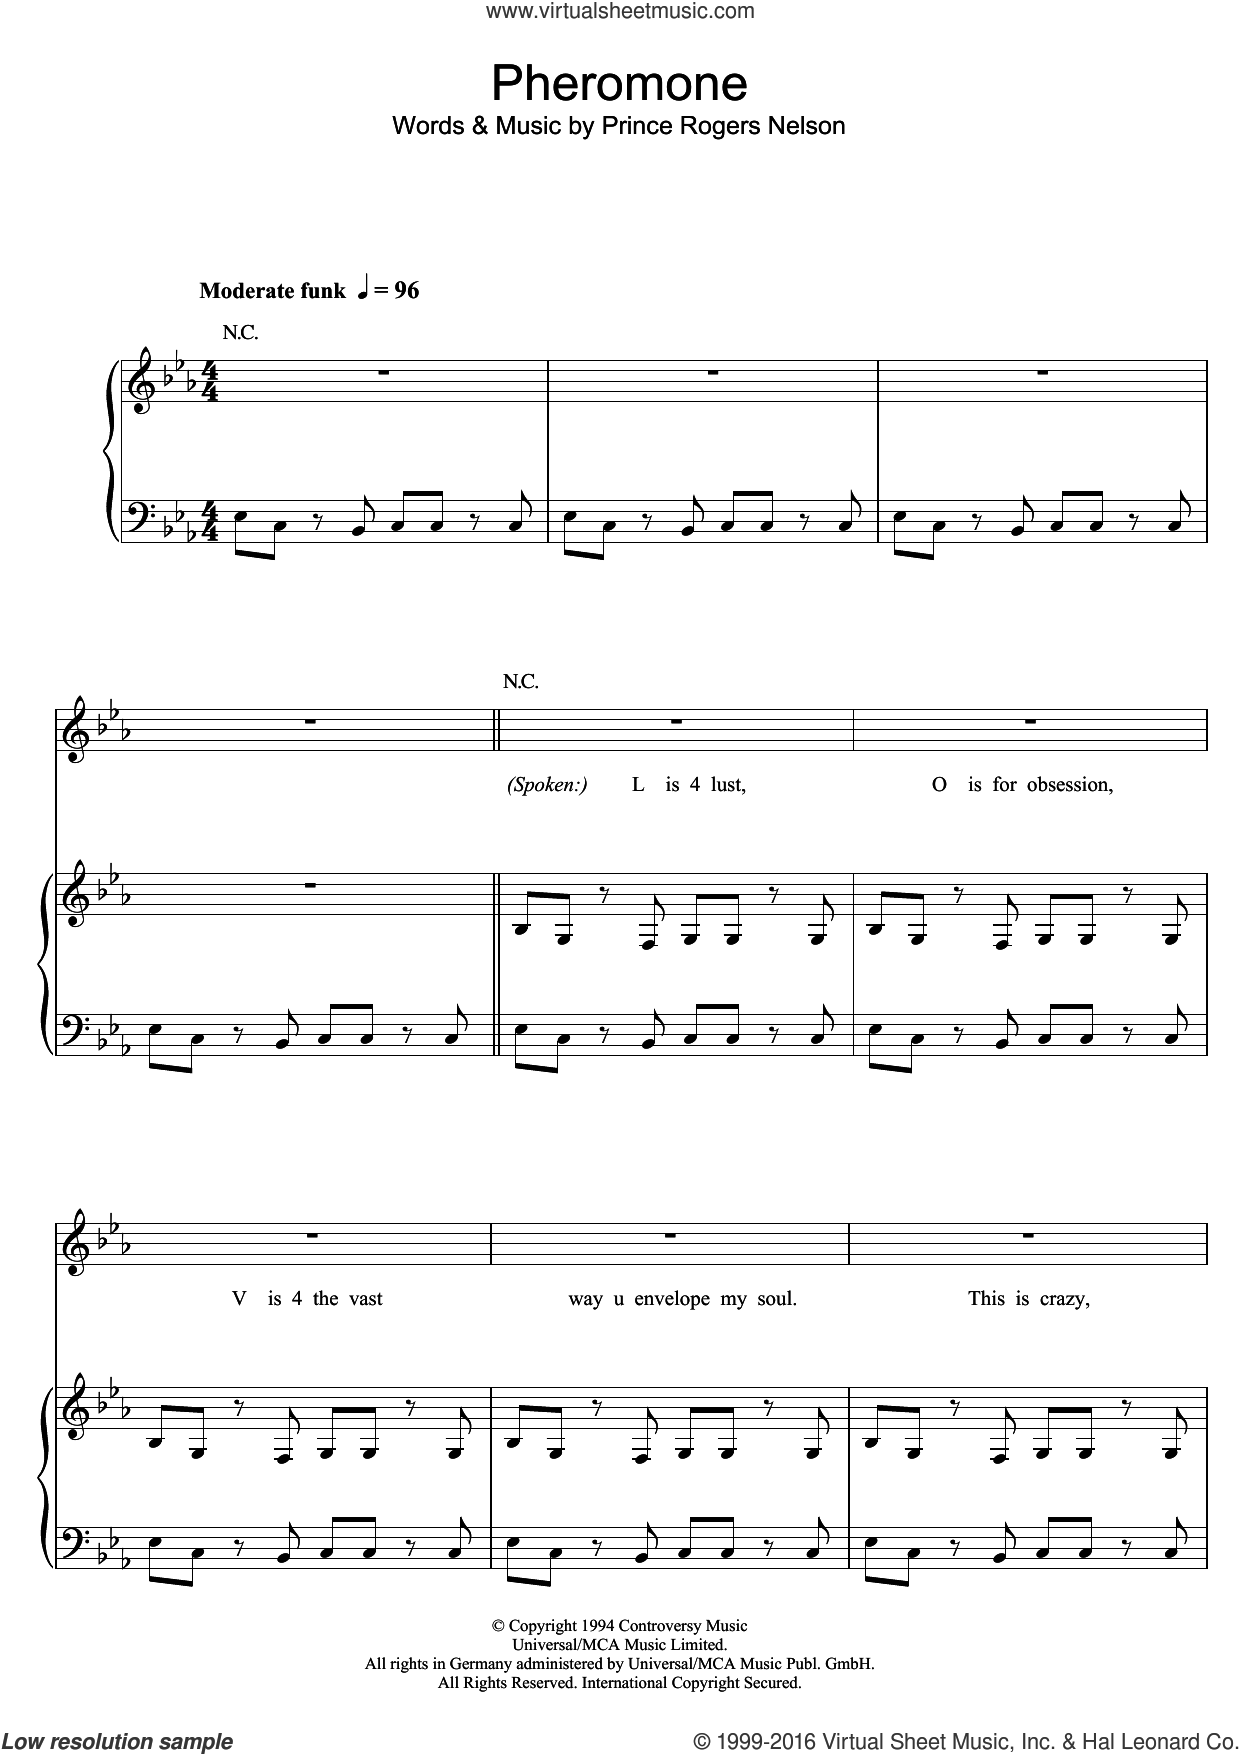 Pheromone sheet music for voice, piano or guitar by Prince and Prince Rogers Nelson, intermediate